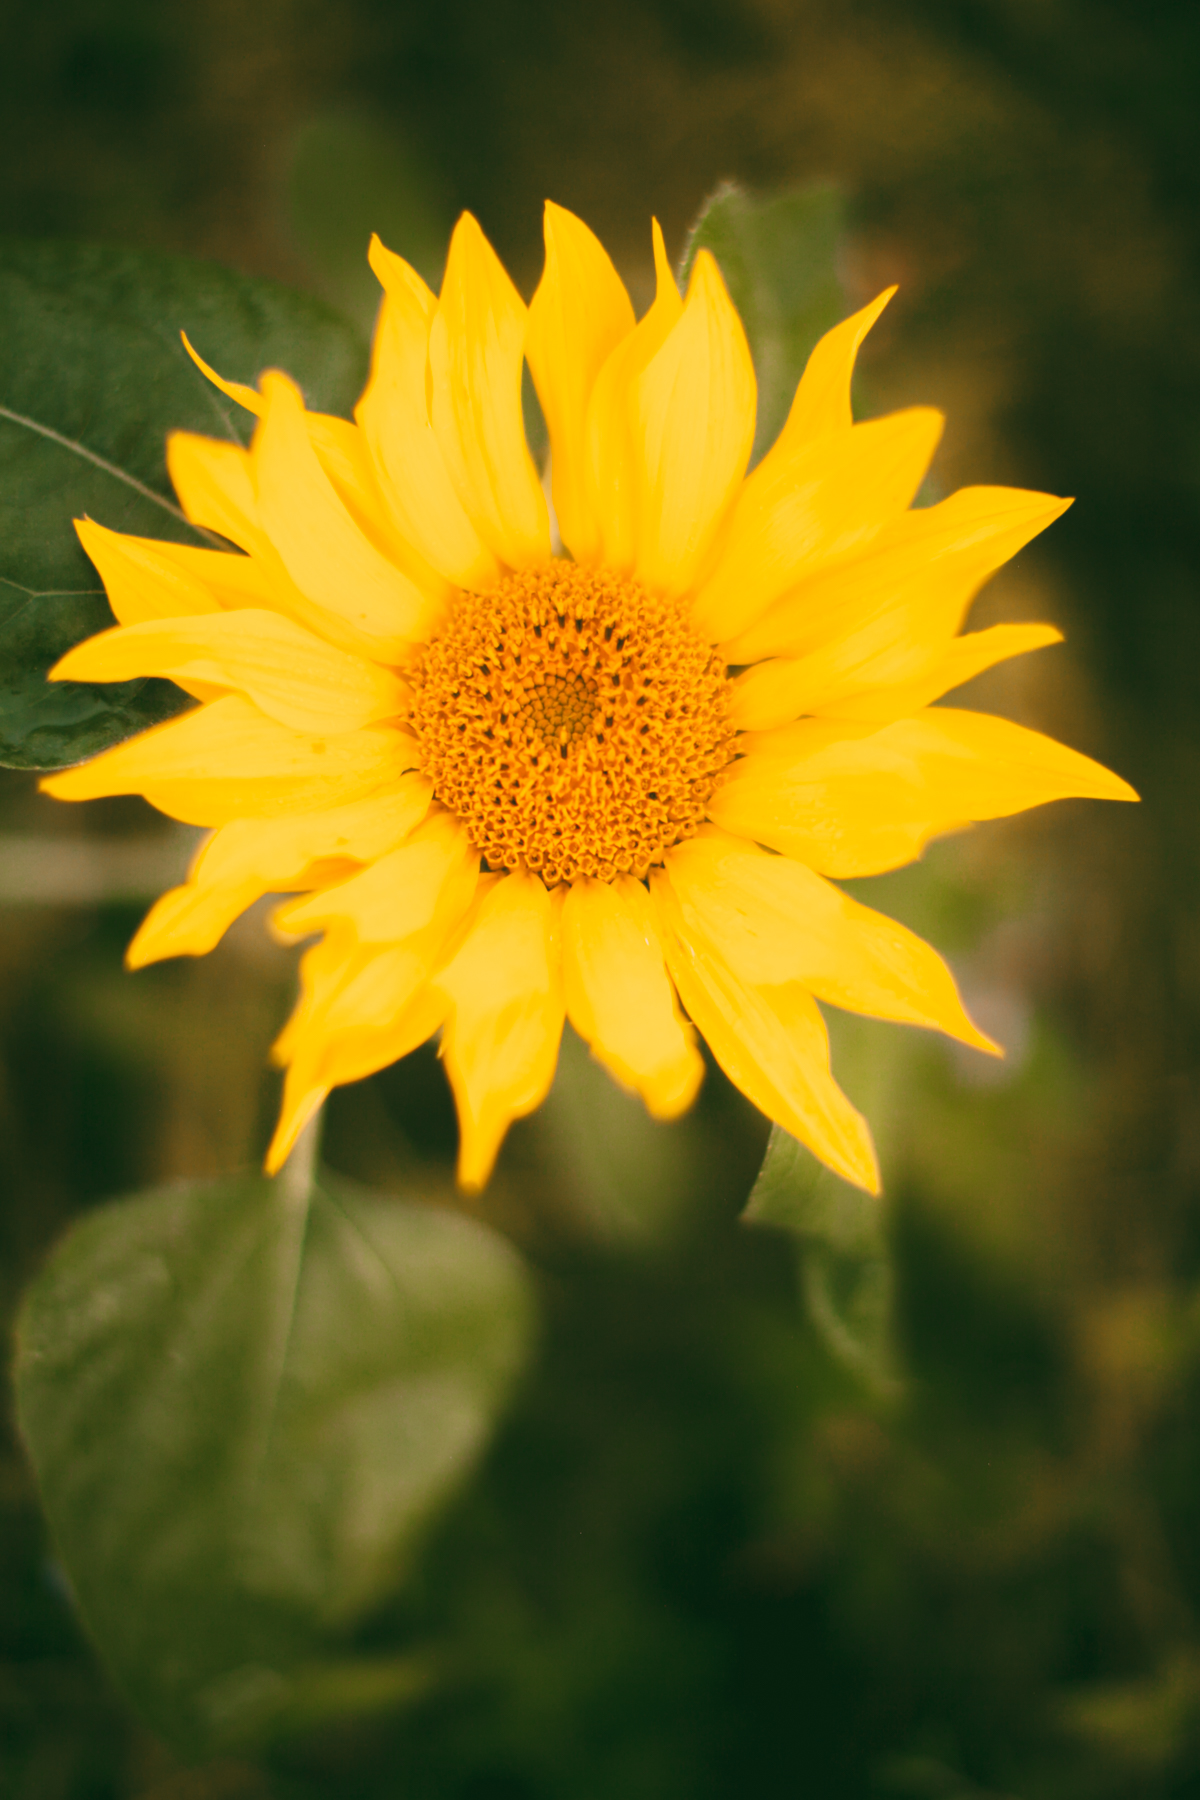 sunflowerish-65